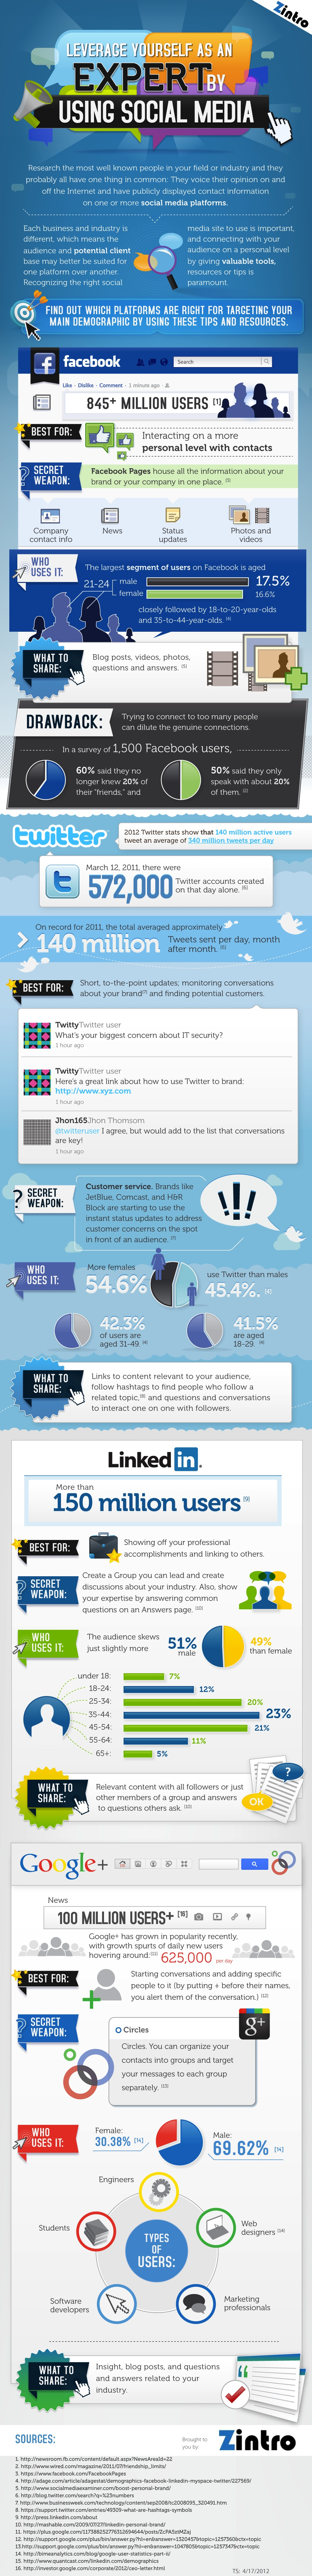 How To Leverage Yourself As An Expert By Using Social Media Infographic